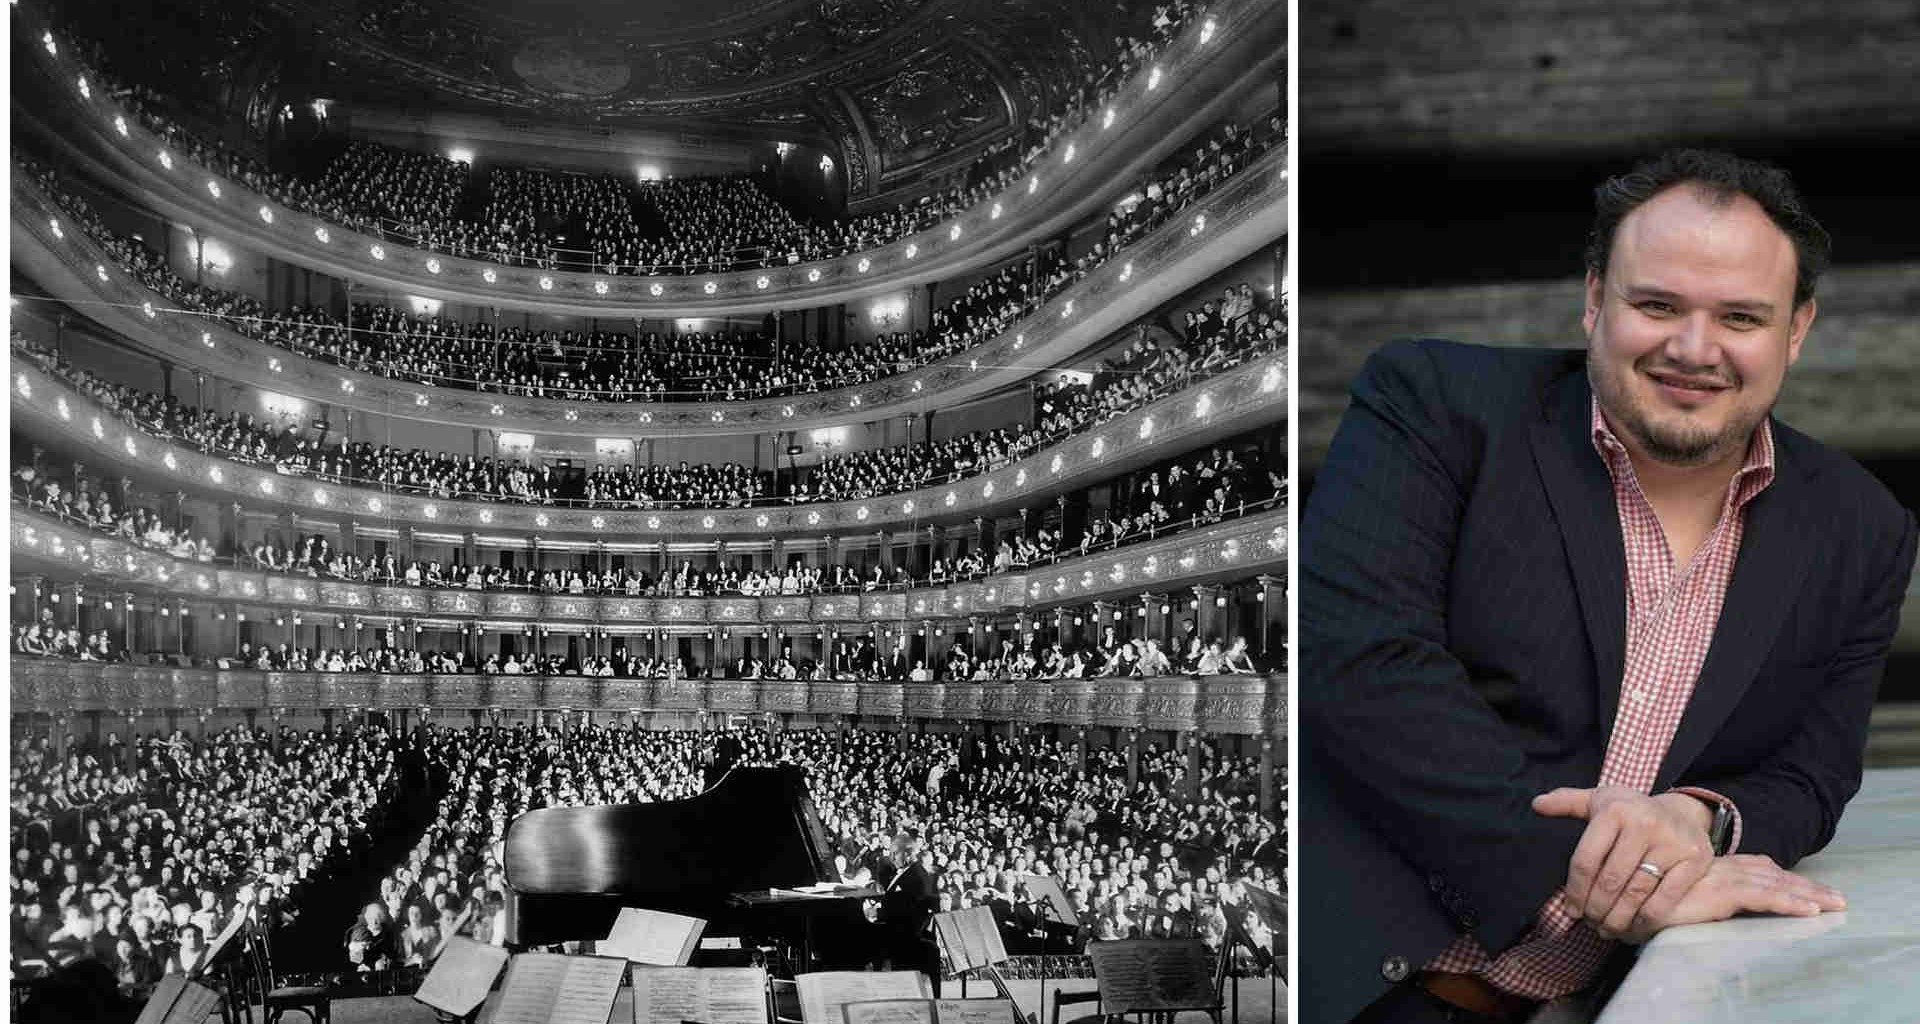 Nombran a EXATEC director de The Dallas Opera